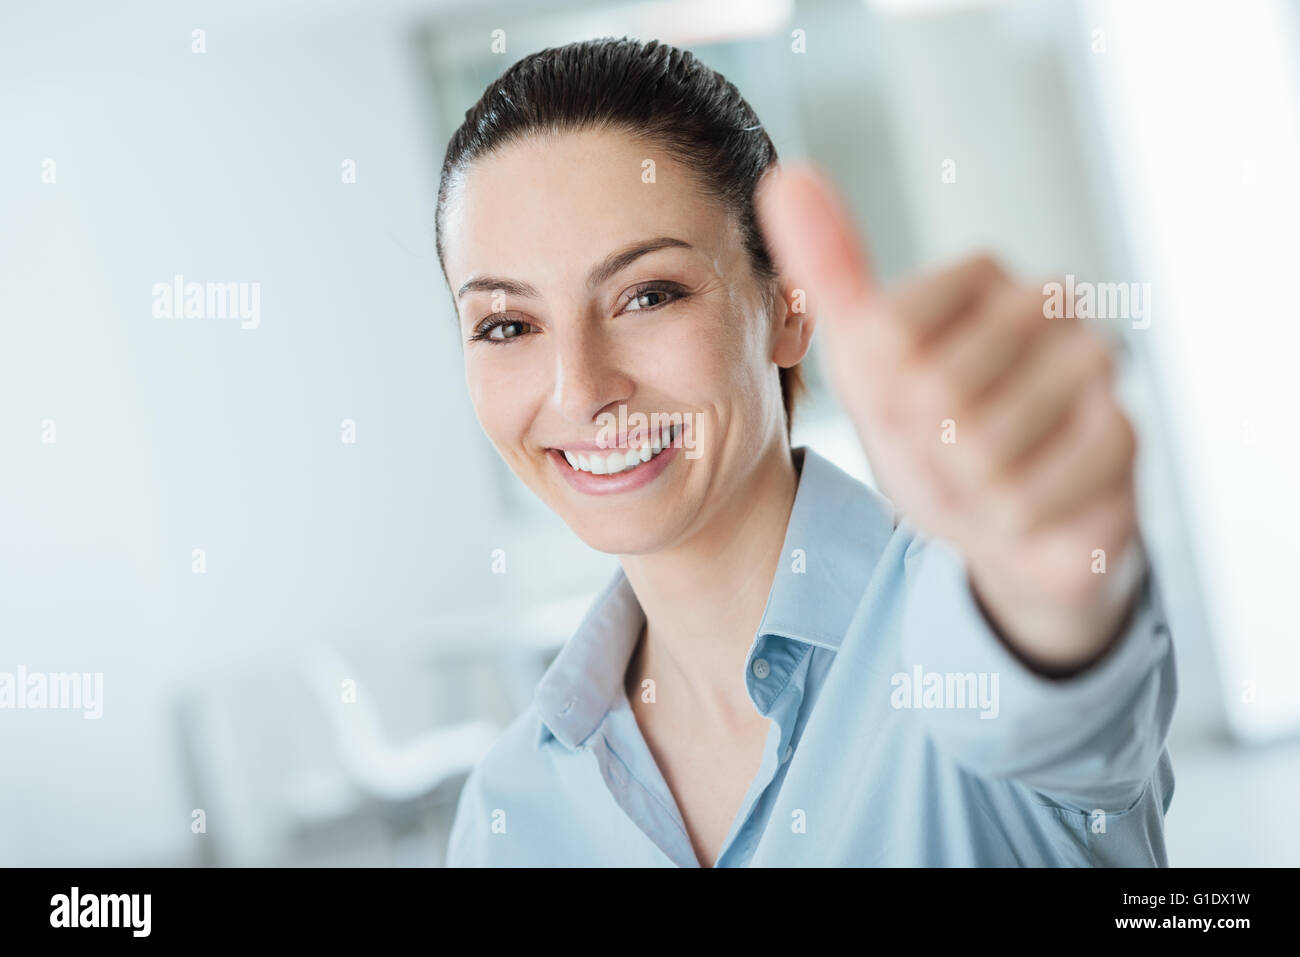 Beautiful businesswoman thumbs up smiling at camera, success and achievement concept - Stock Image